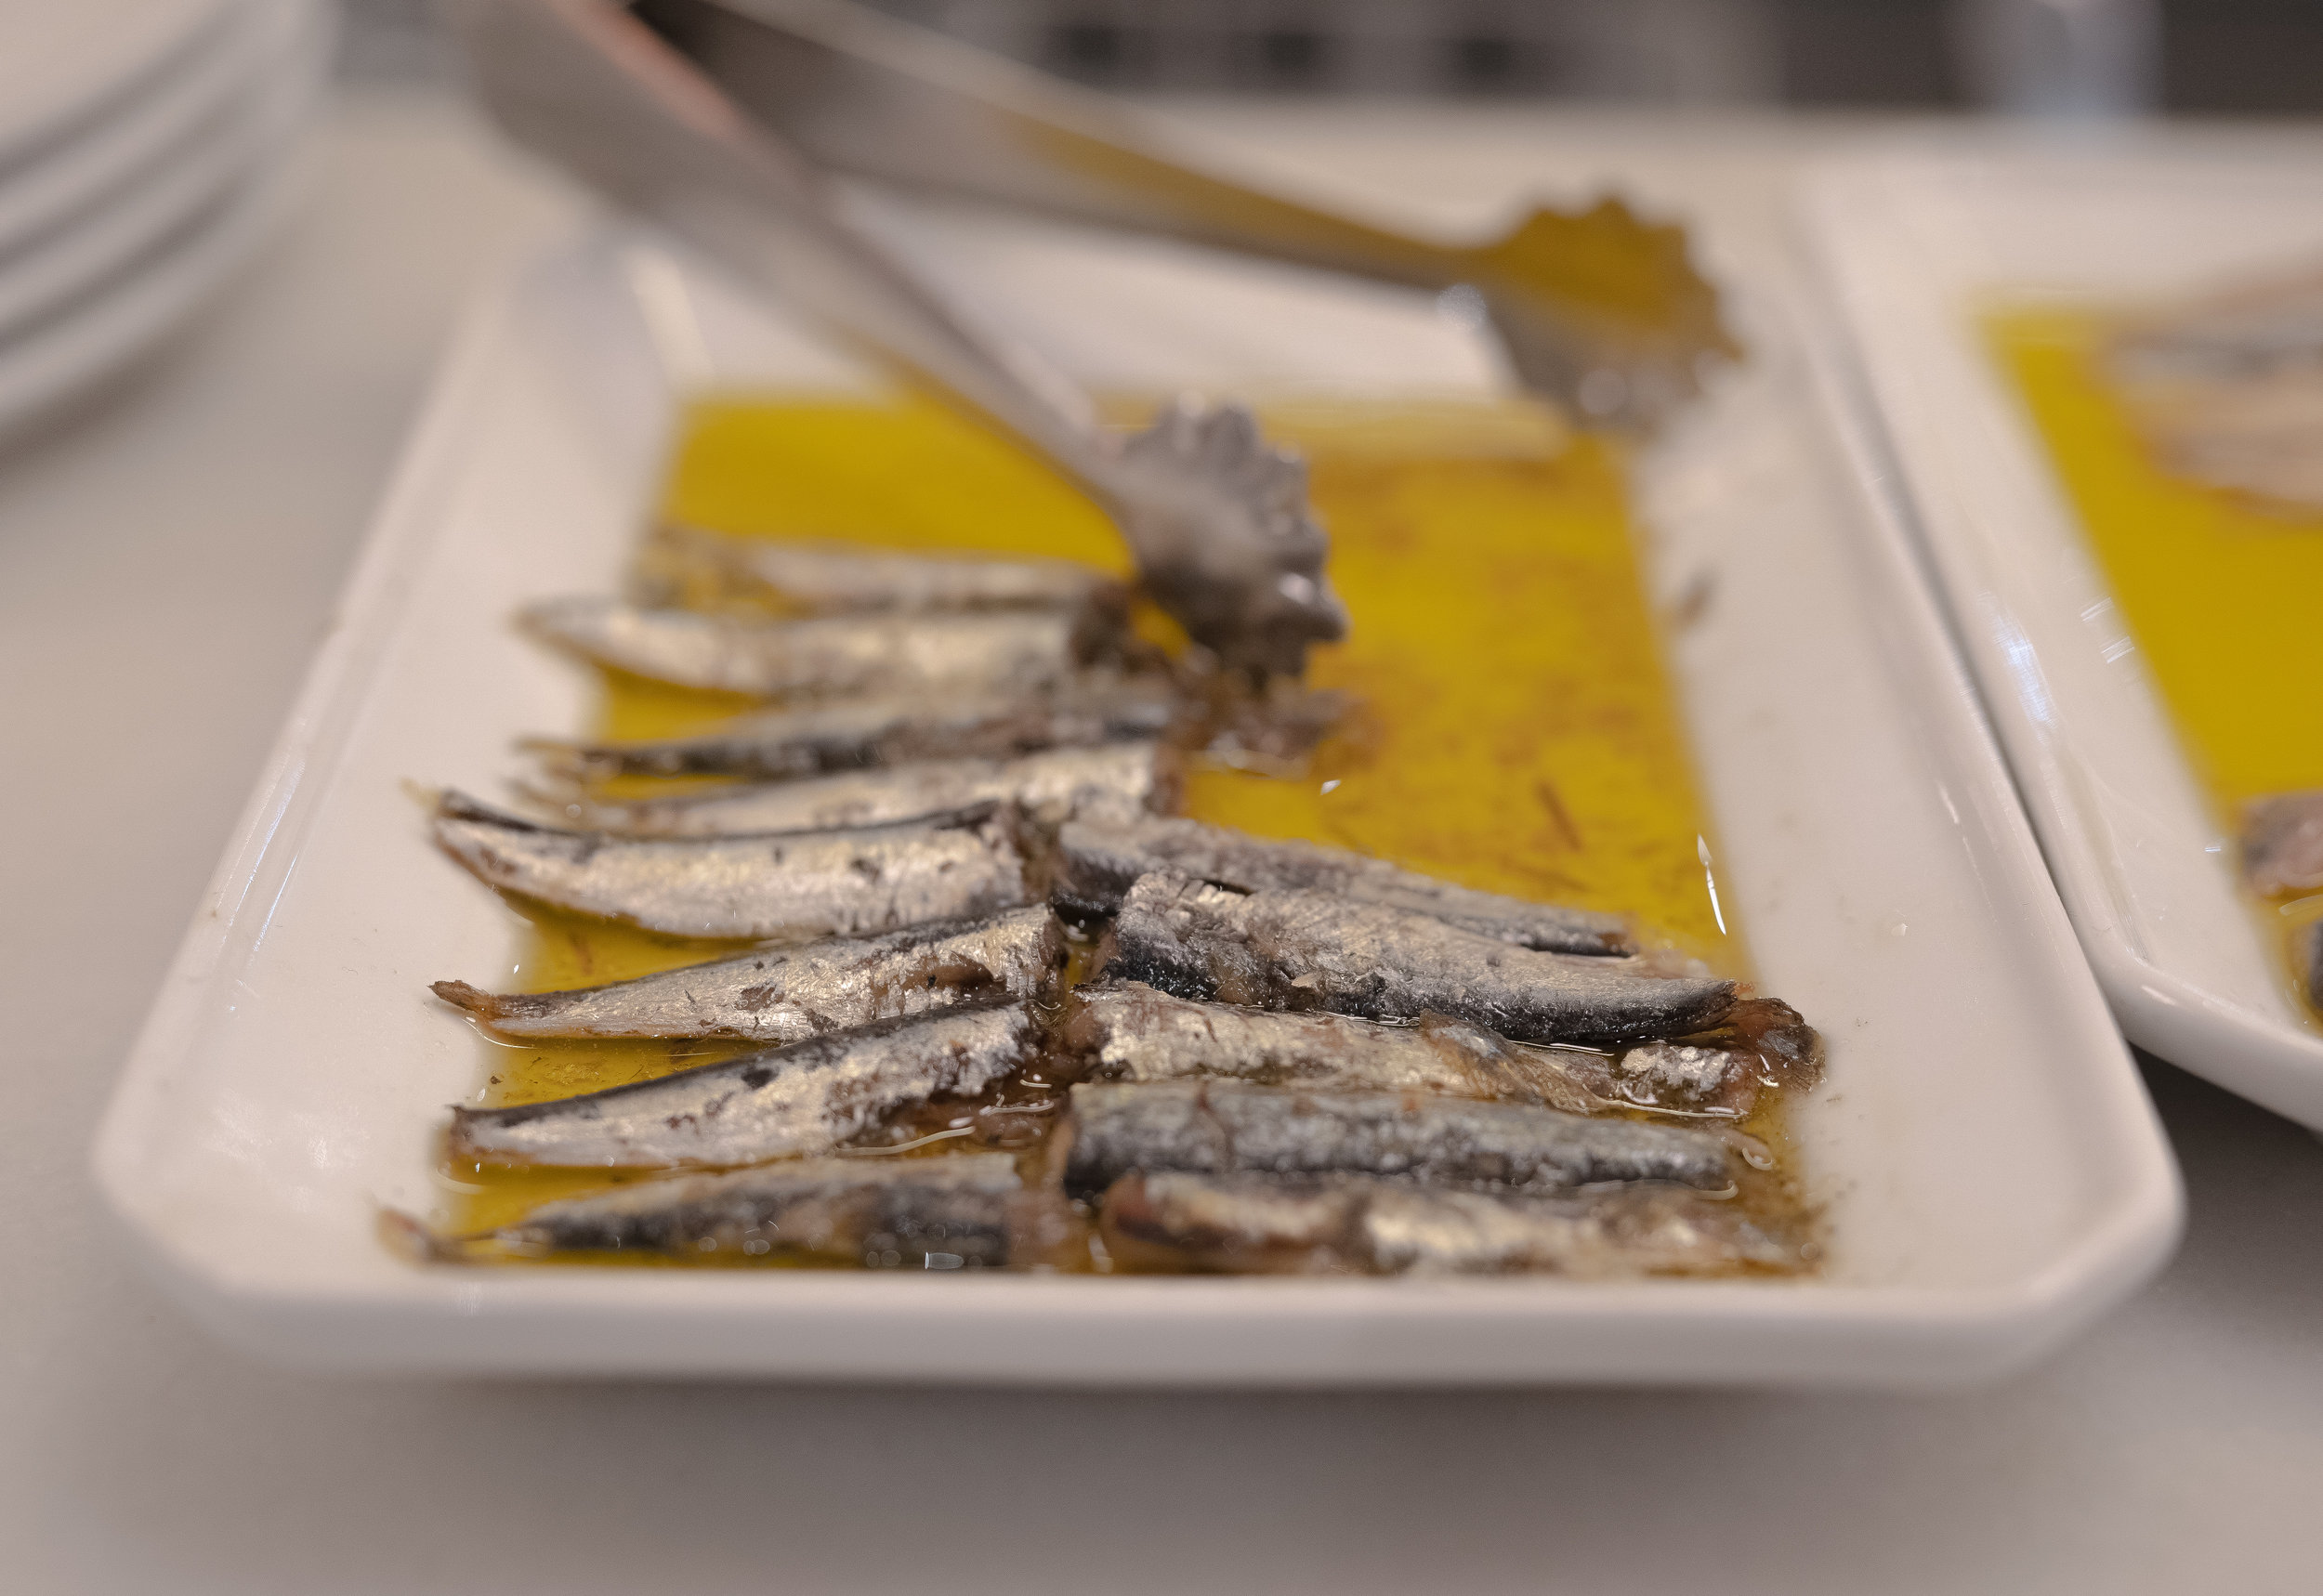 From the friends you make and teaching experience, to the traveling, learning Spanish, and EATING  sobre todo  - you will not be the same person when you go back home. For example, the untrained eye may see  aceite de oliva  with fish in the picture above. But auxiliares de conversación extranjeros wonder… could they be   sardinas   ?    boquerones   ?    anchoas   ?    bonito   ?    ventresca   ?